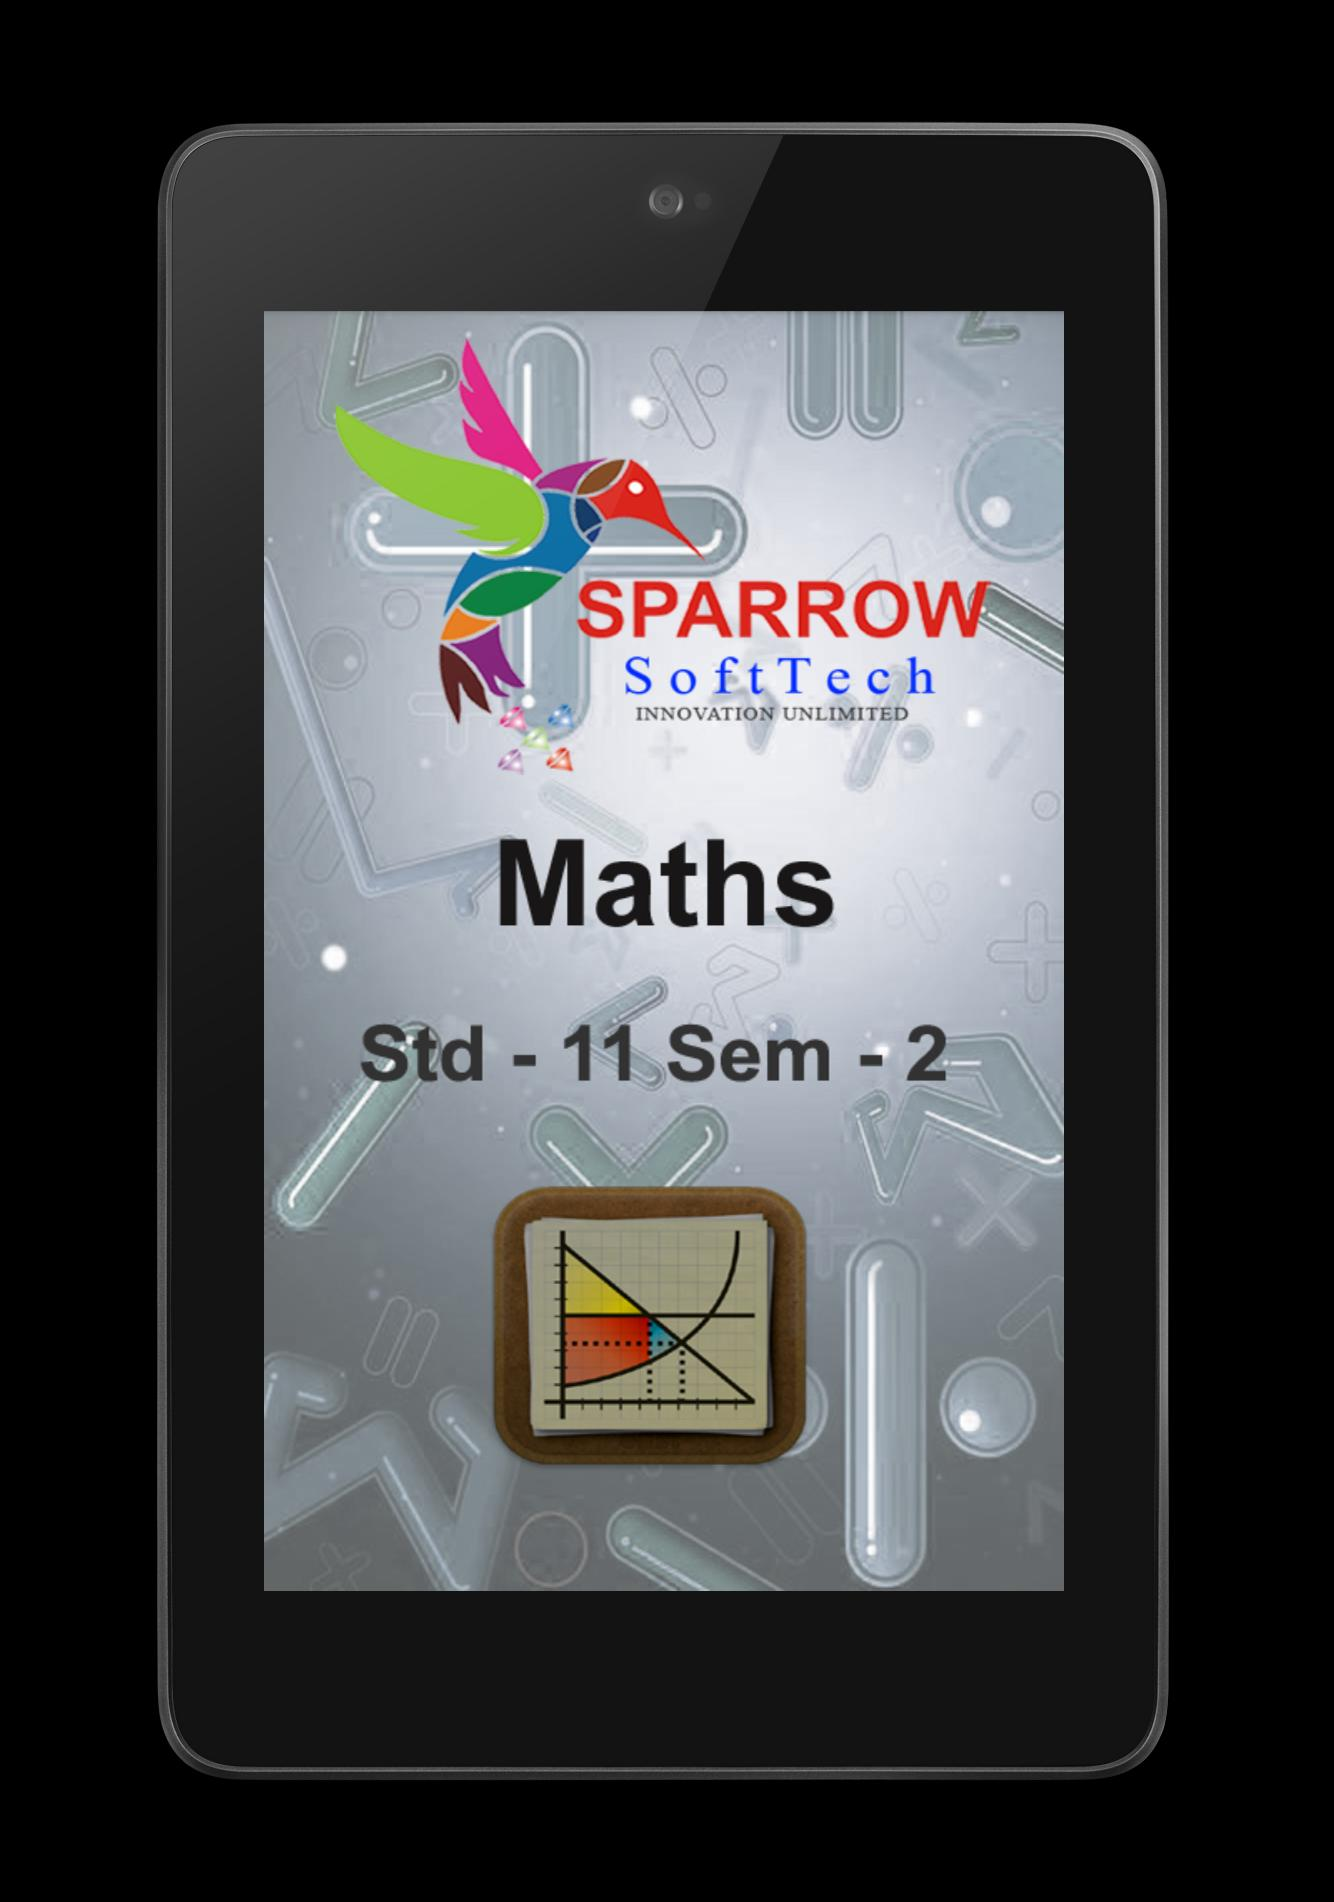 Gujarati 11th Maths semester 2 for Android - APK Download